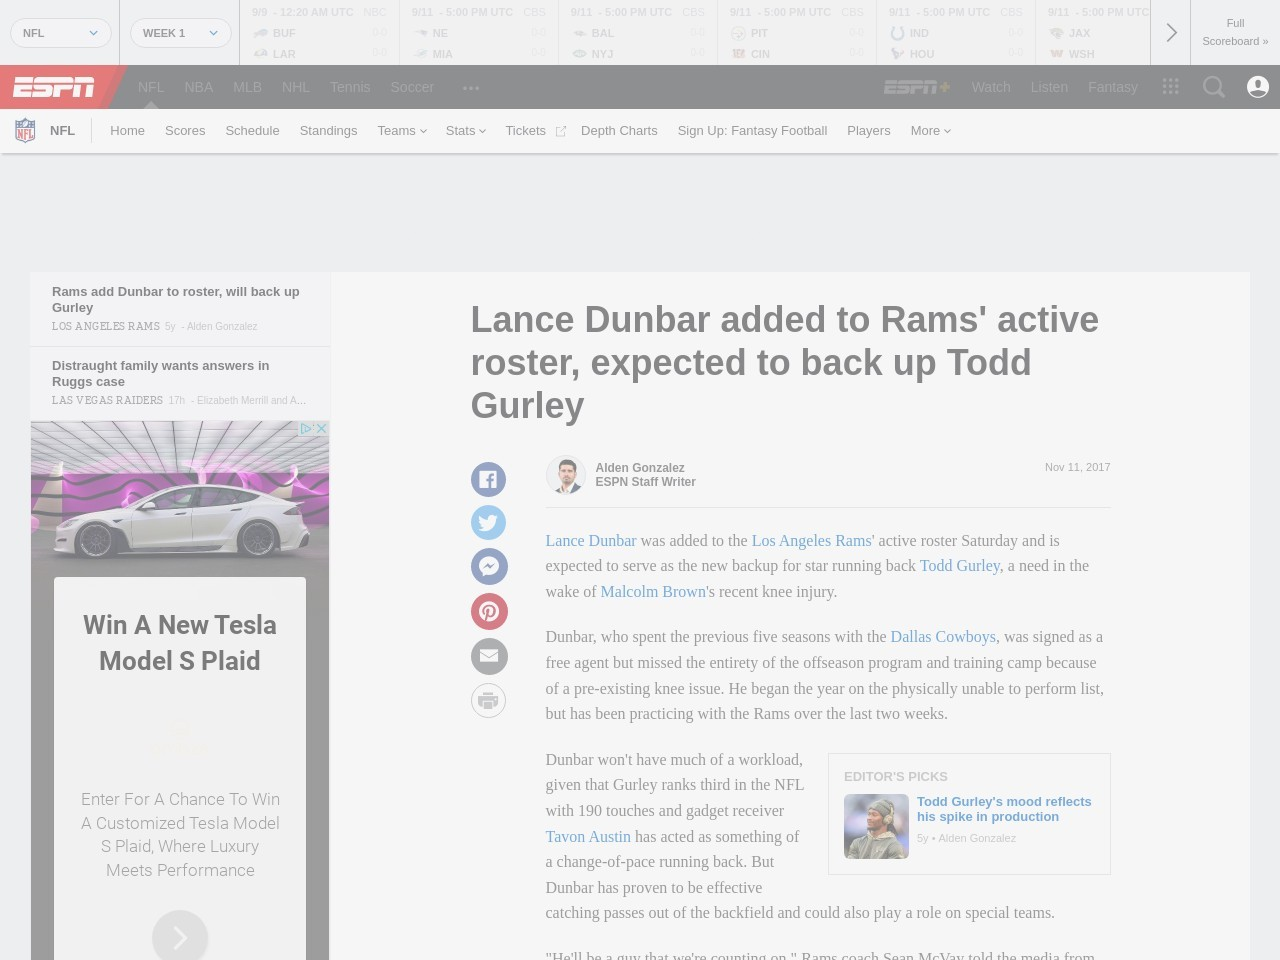 Rams add Dunbar to roster, will back up Gurley